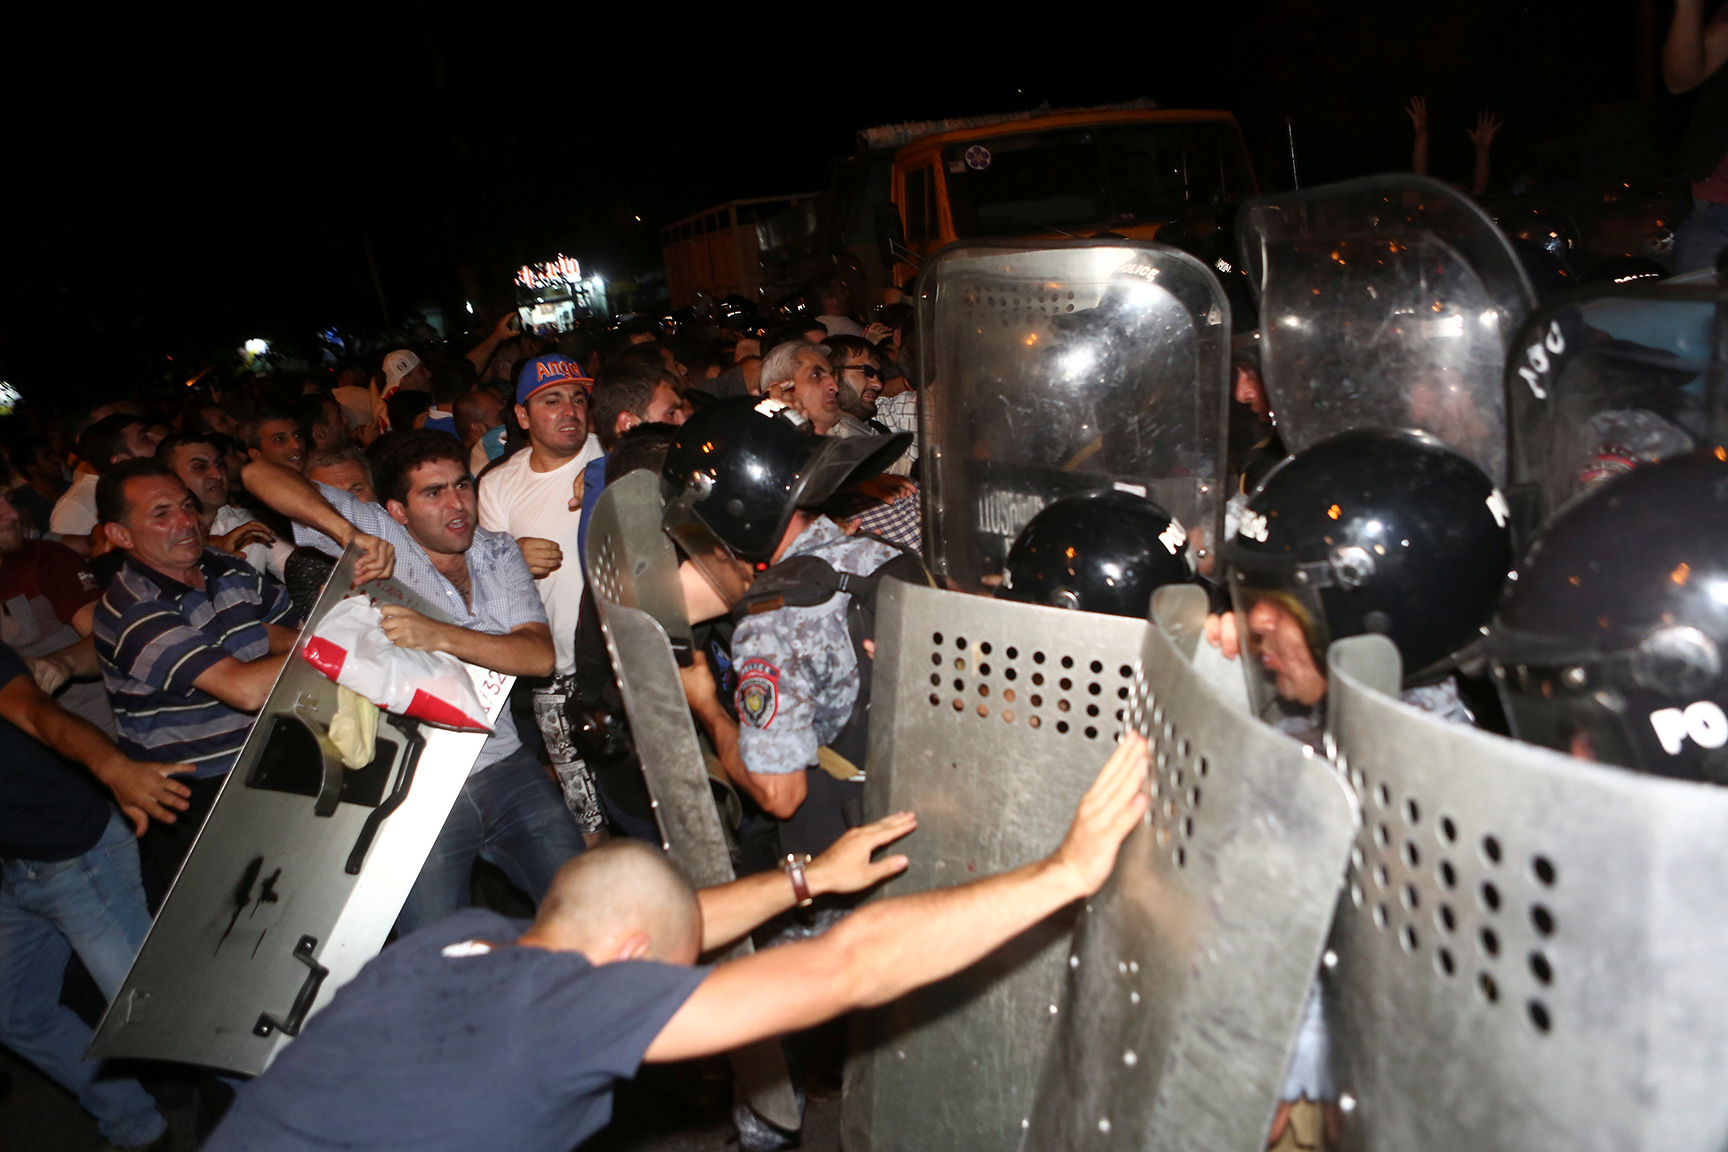 Riot police clash with demonstrators who had gathered in show of support for gunmen holding several hostages in police station in Yerevan